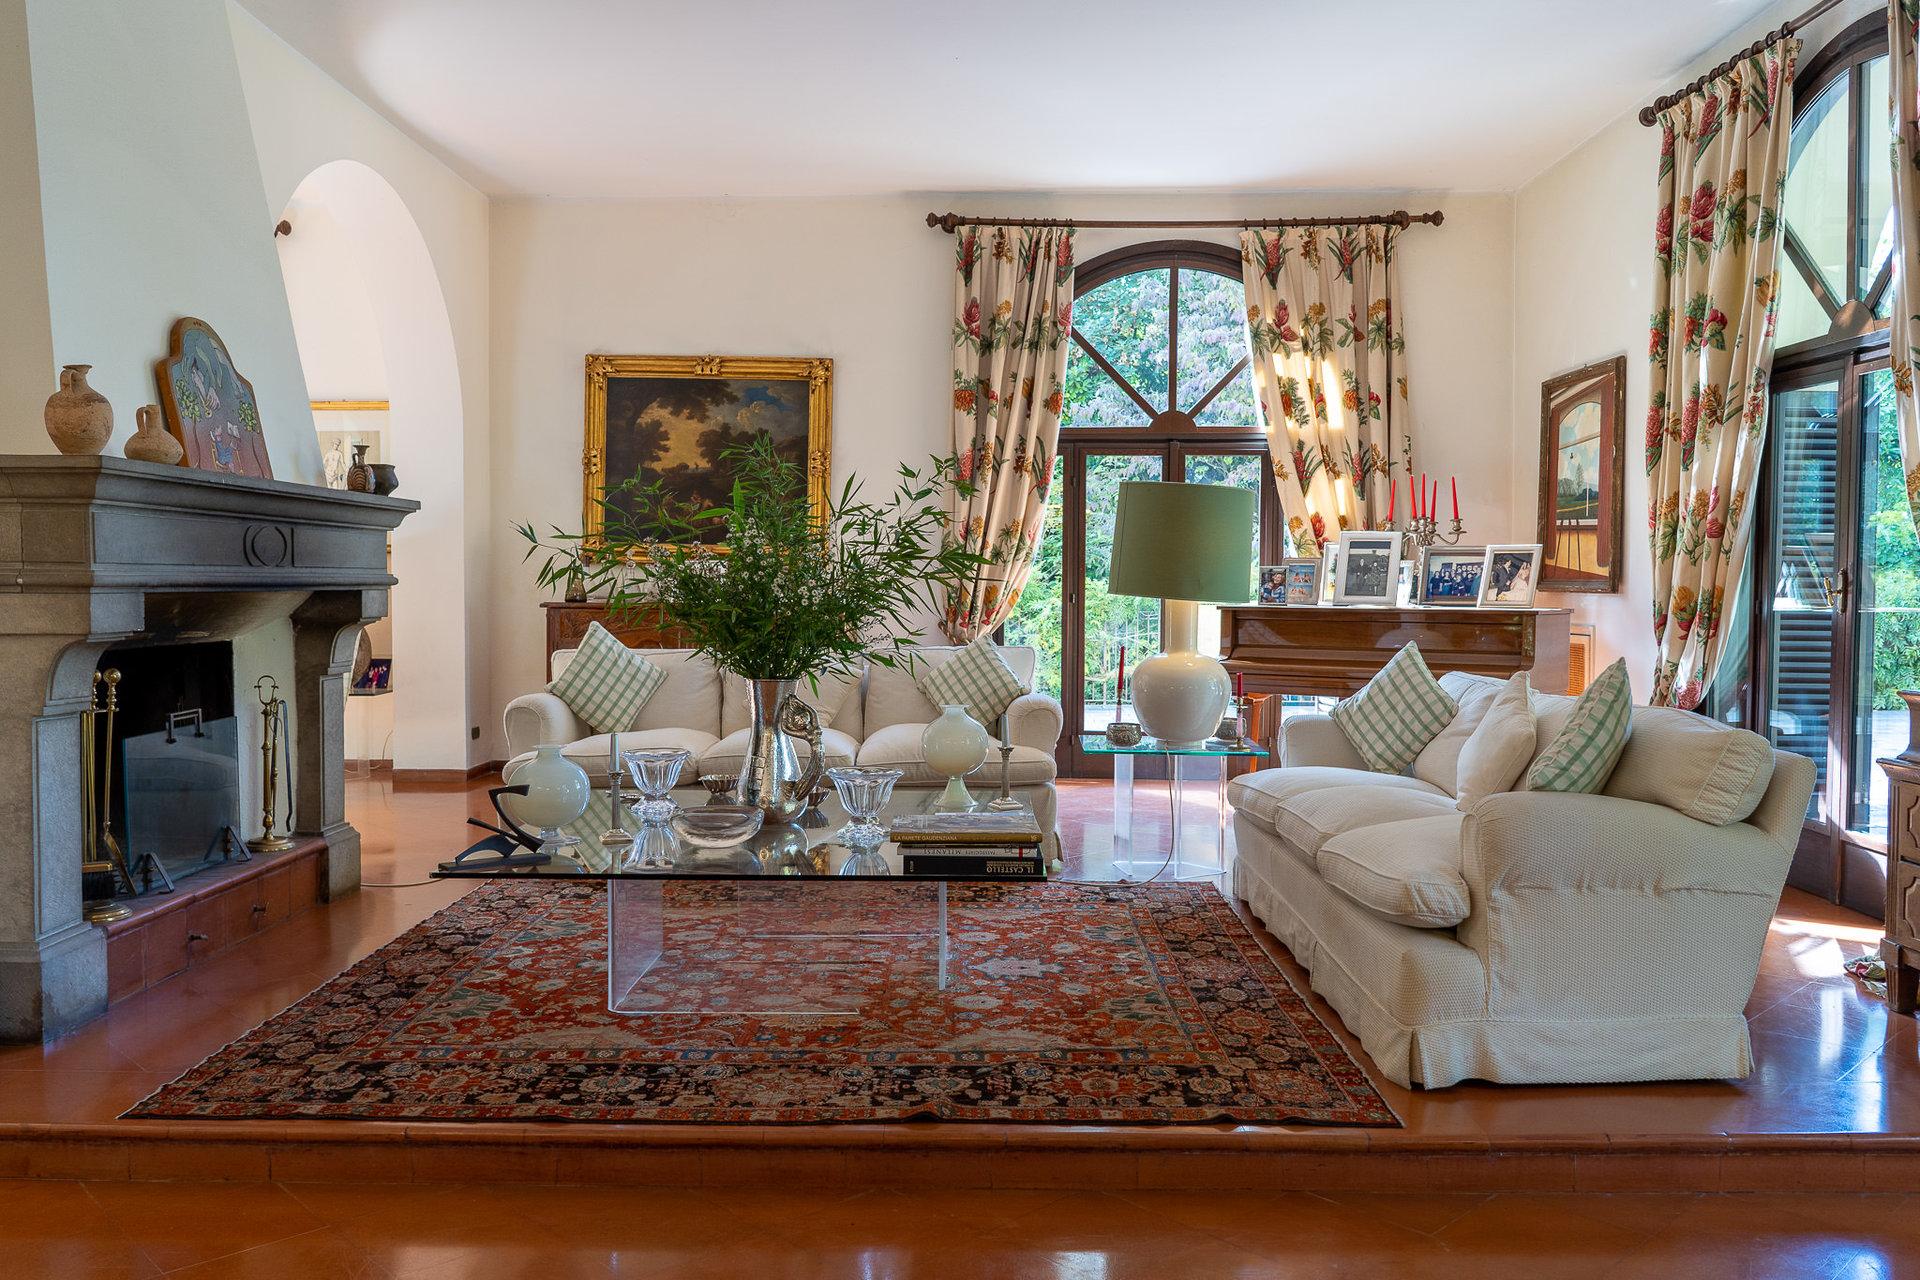 Period villa with park for sale on Ticino River - elegant sitting room